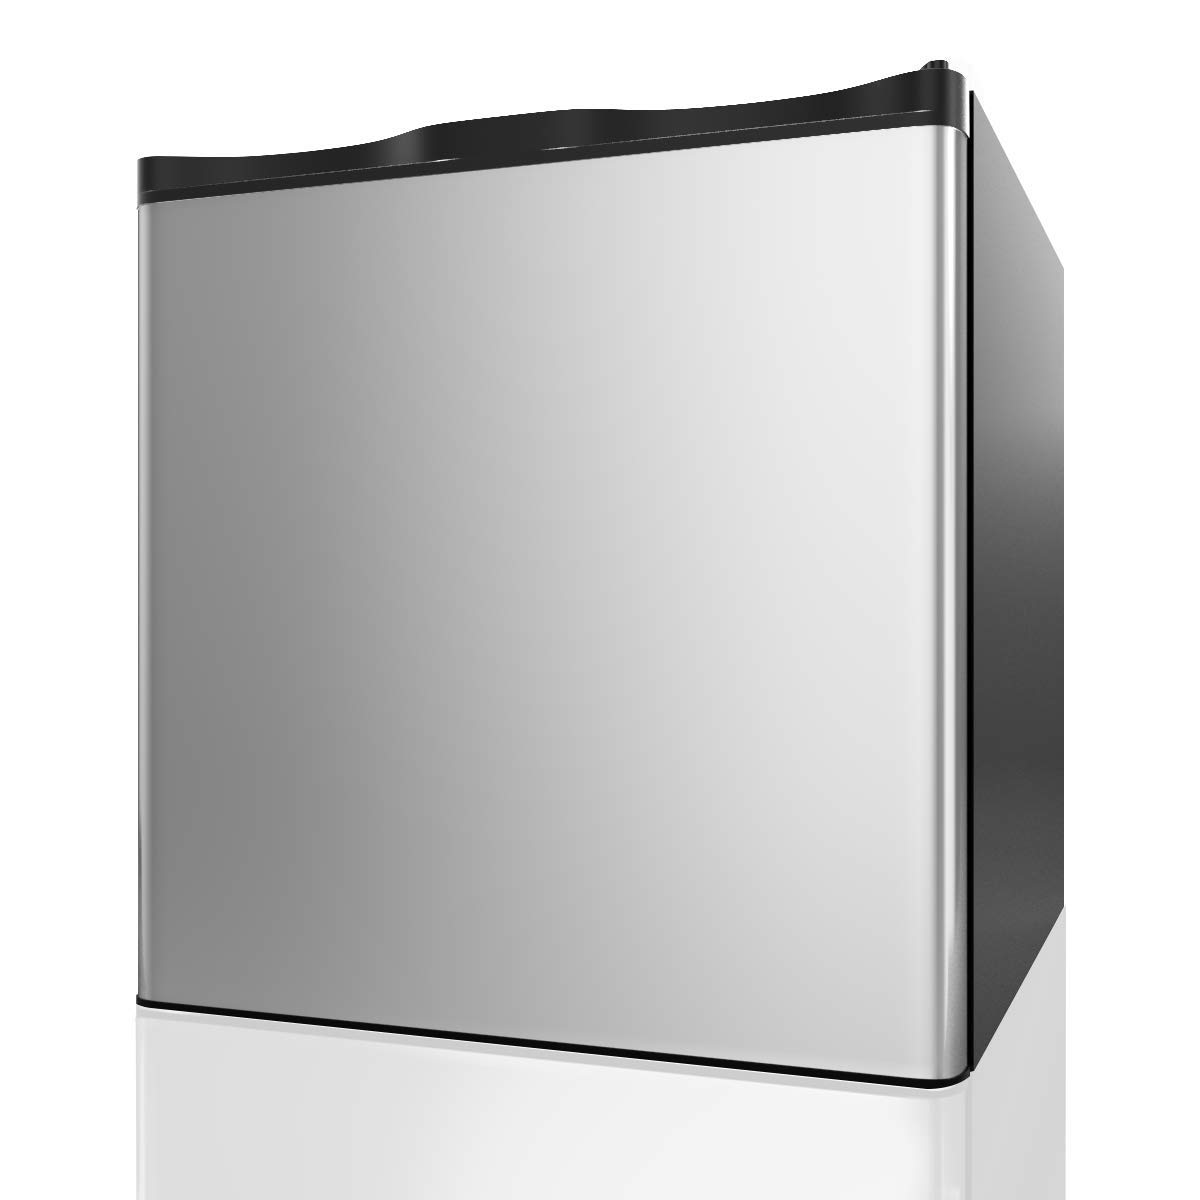 COSTWAY Compact Single Door Upright Freezer - Mini Size with Reversible Stainless Steel Door - 1.1 CUFT Capacity - Adjustable Removable Shelves